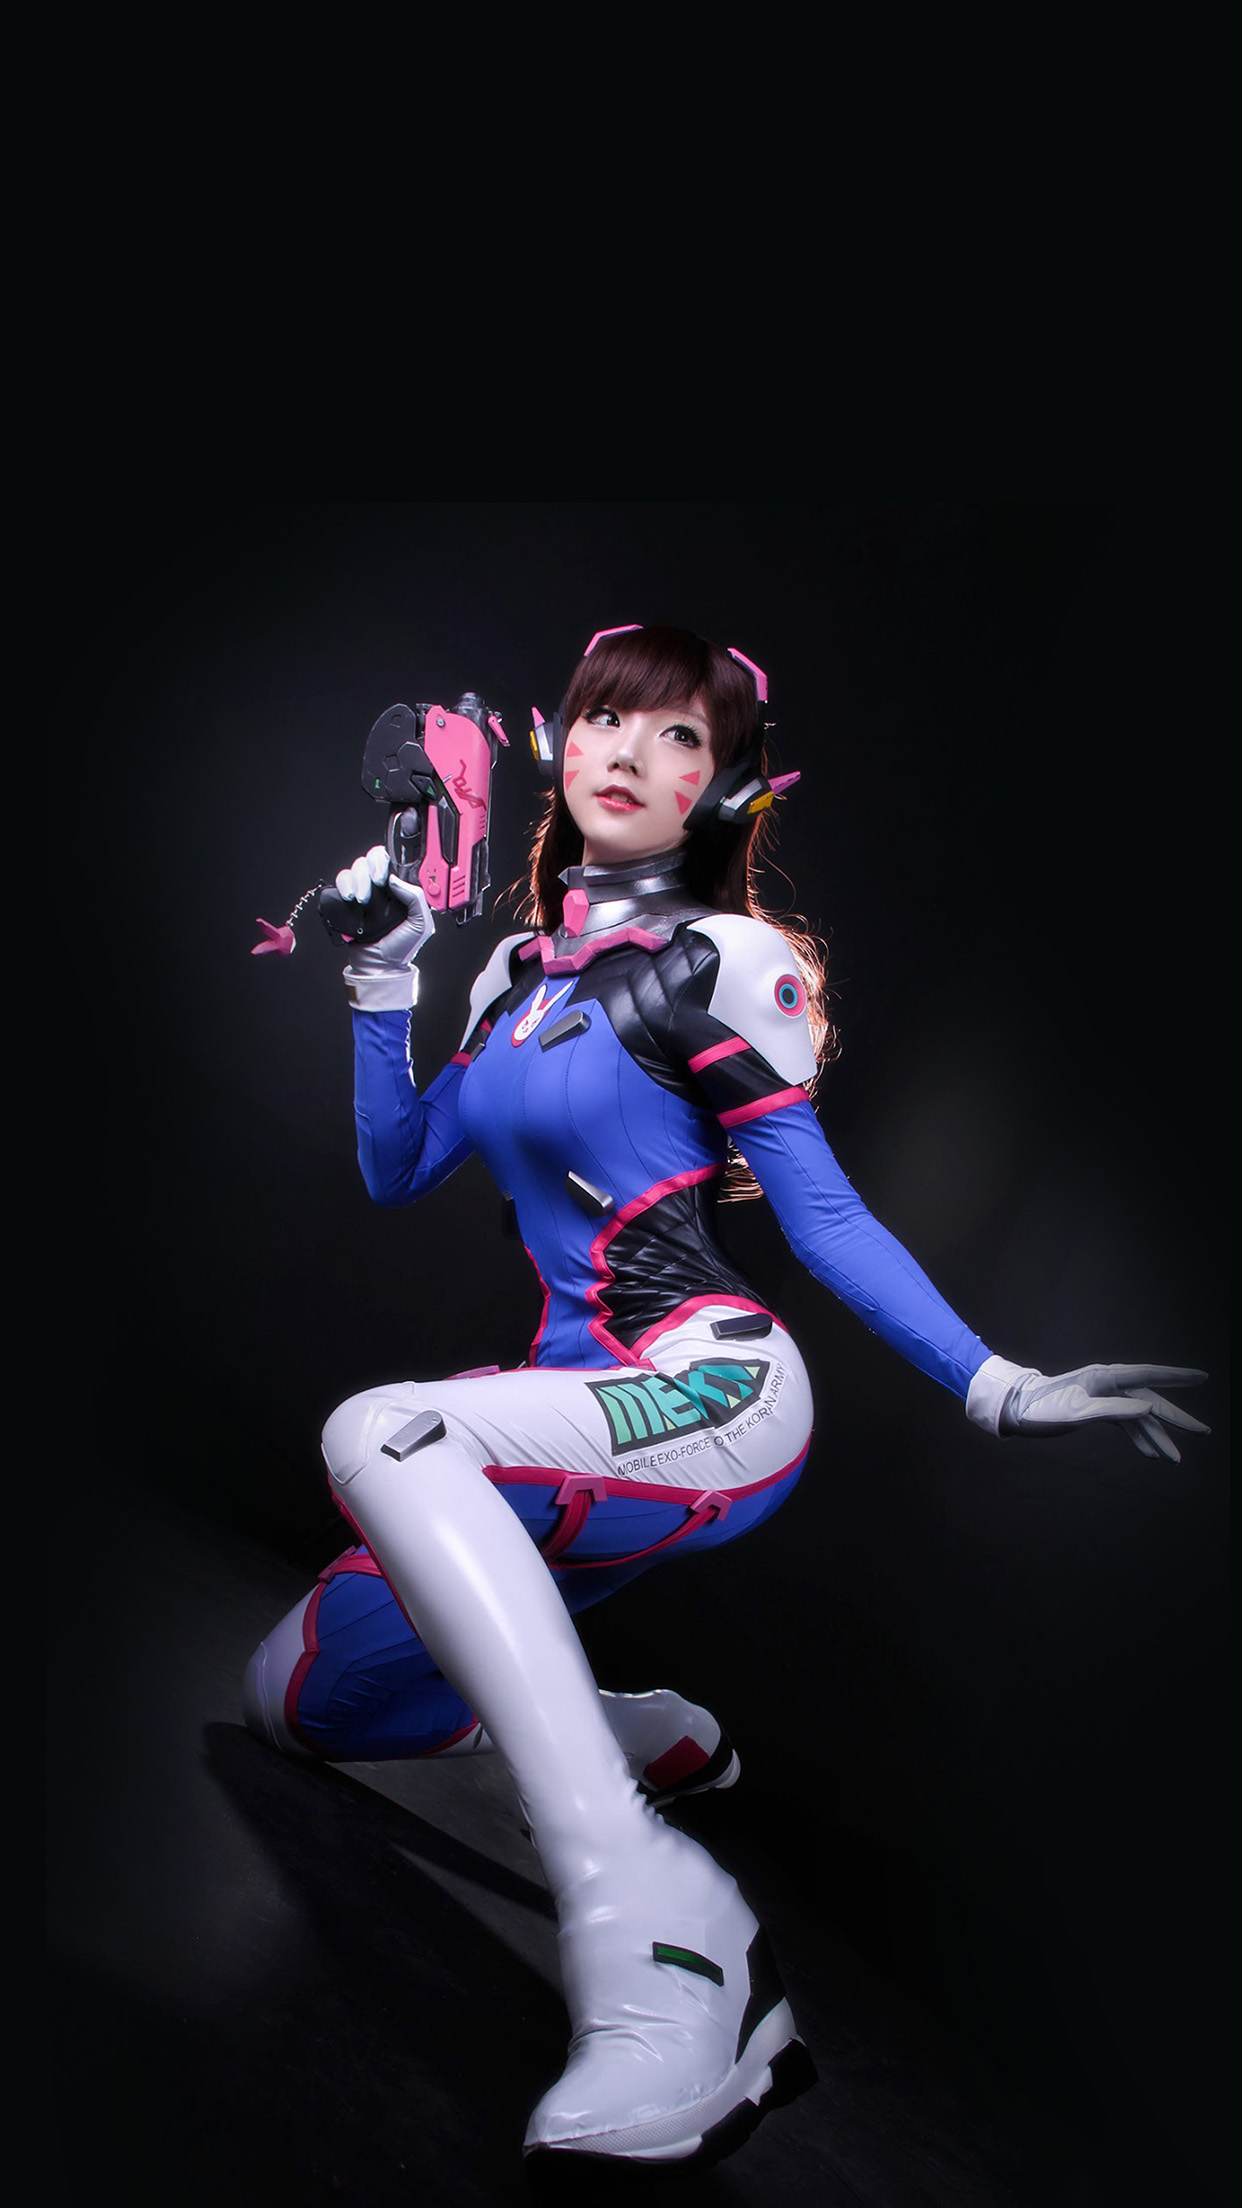 Iphonepapers Com Iphone 8 Wallpaper Hk48 Overwatch Songhana Dva